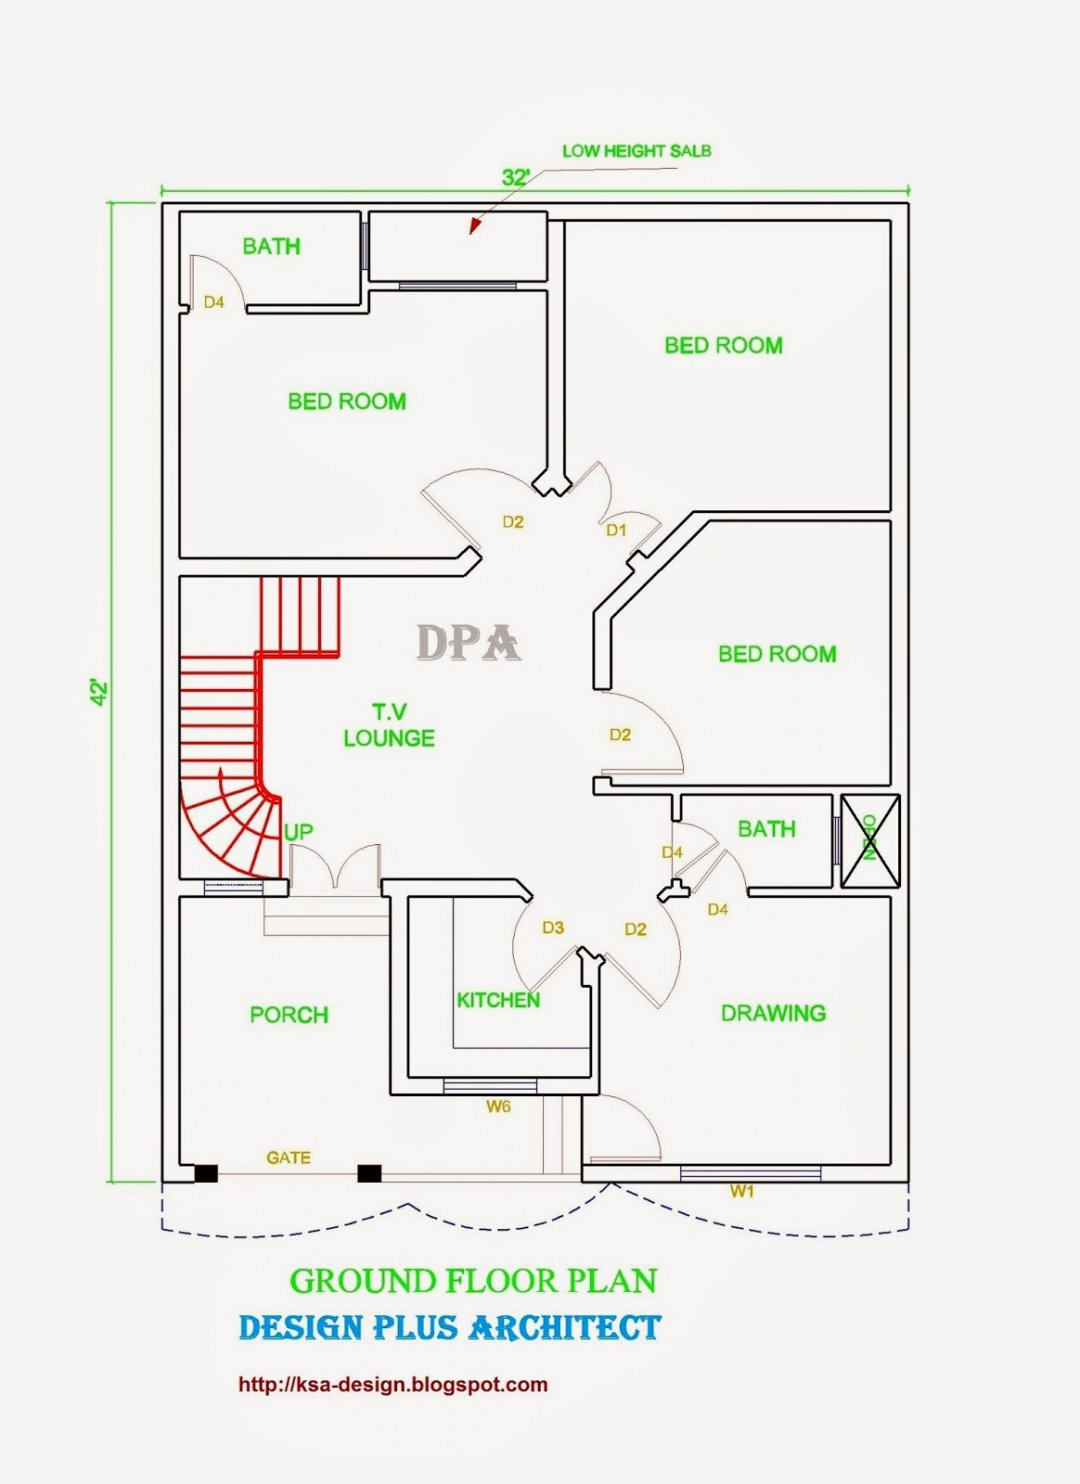 Autocad Basic Drawing Exercises Pdf At Free For Hvac In 1080x1484 Floor Plan House Plans Drawings First Cl Home